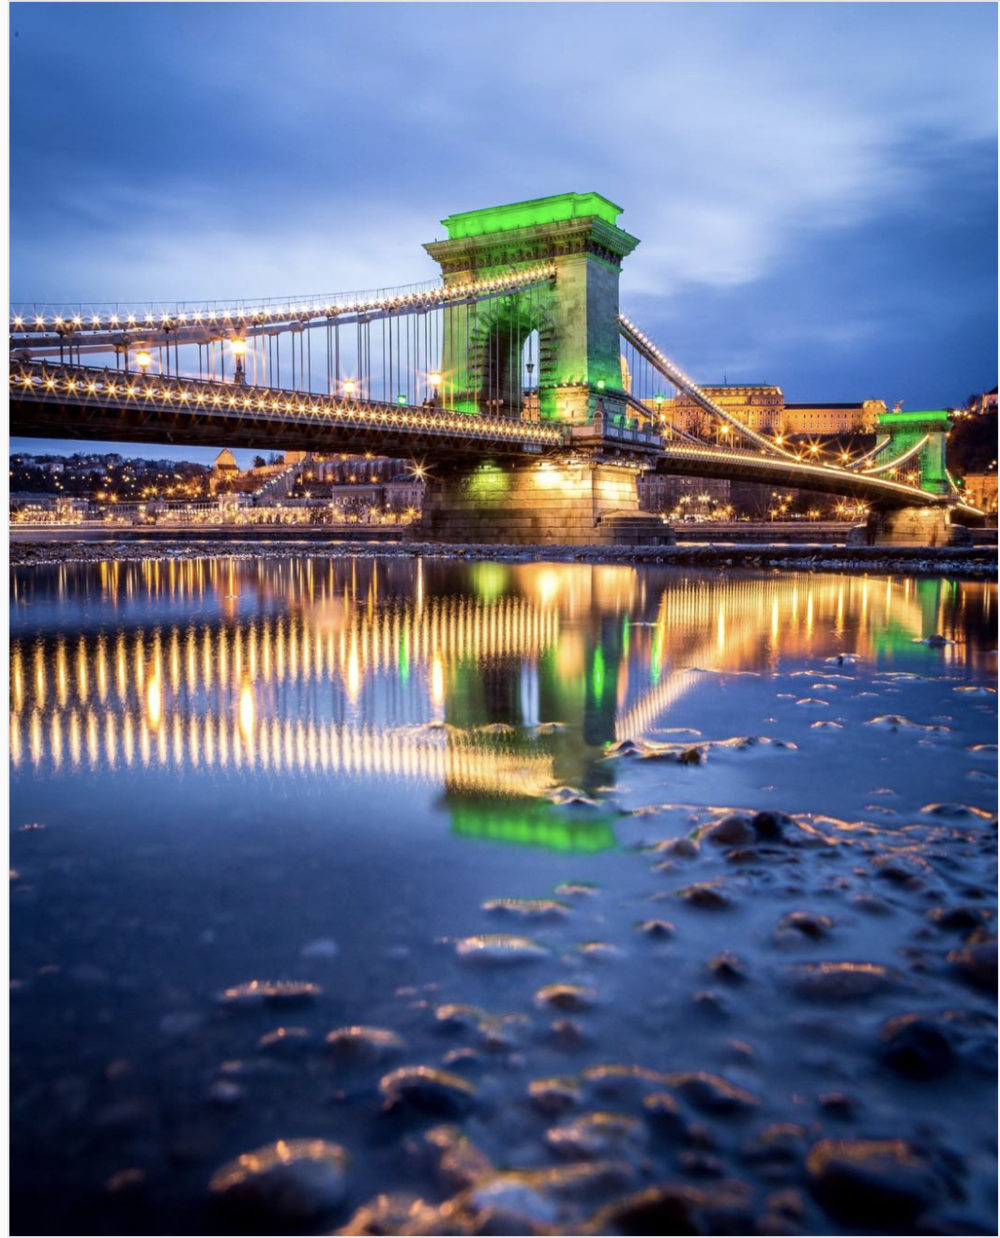 Using a puddle to photograph reflections of the Chain Bridge, Budapest, Hungary